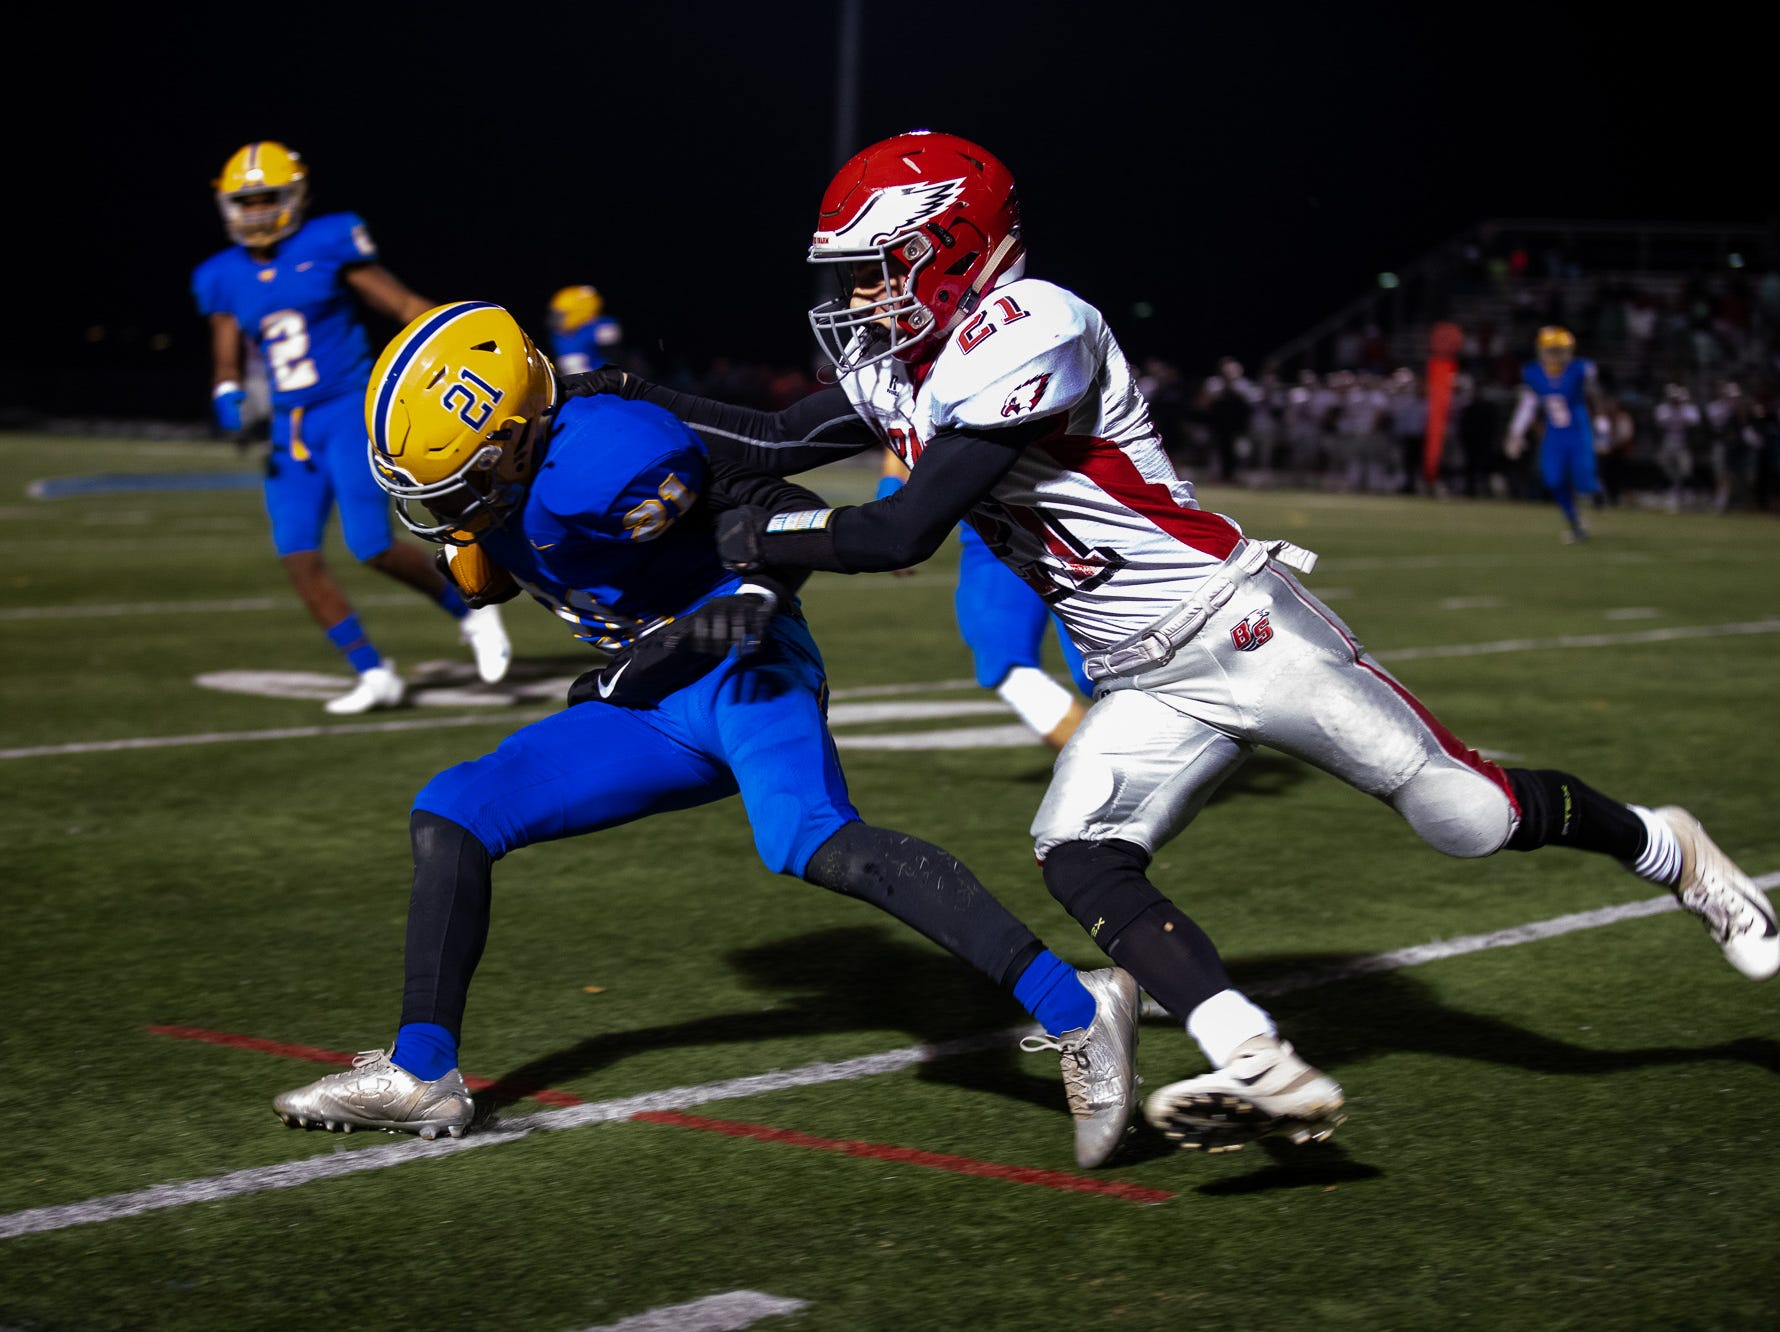 Bermudian Springs' Ryan Hart (21) brings down Middletown's Antonio Bryant (21) during the second half of the District 3 Class 3A championship game between Bermudian Springs and Middletown, Saturday, Nov. 17, 2018, at Cedar Crest High School. The Middletown Raiders defeated the Bermudian Springs Eagles 41-20 to win the title.